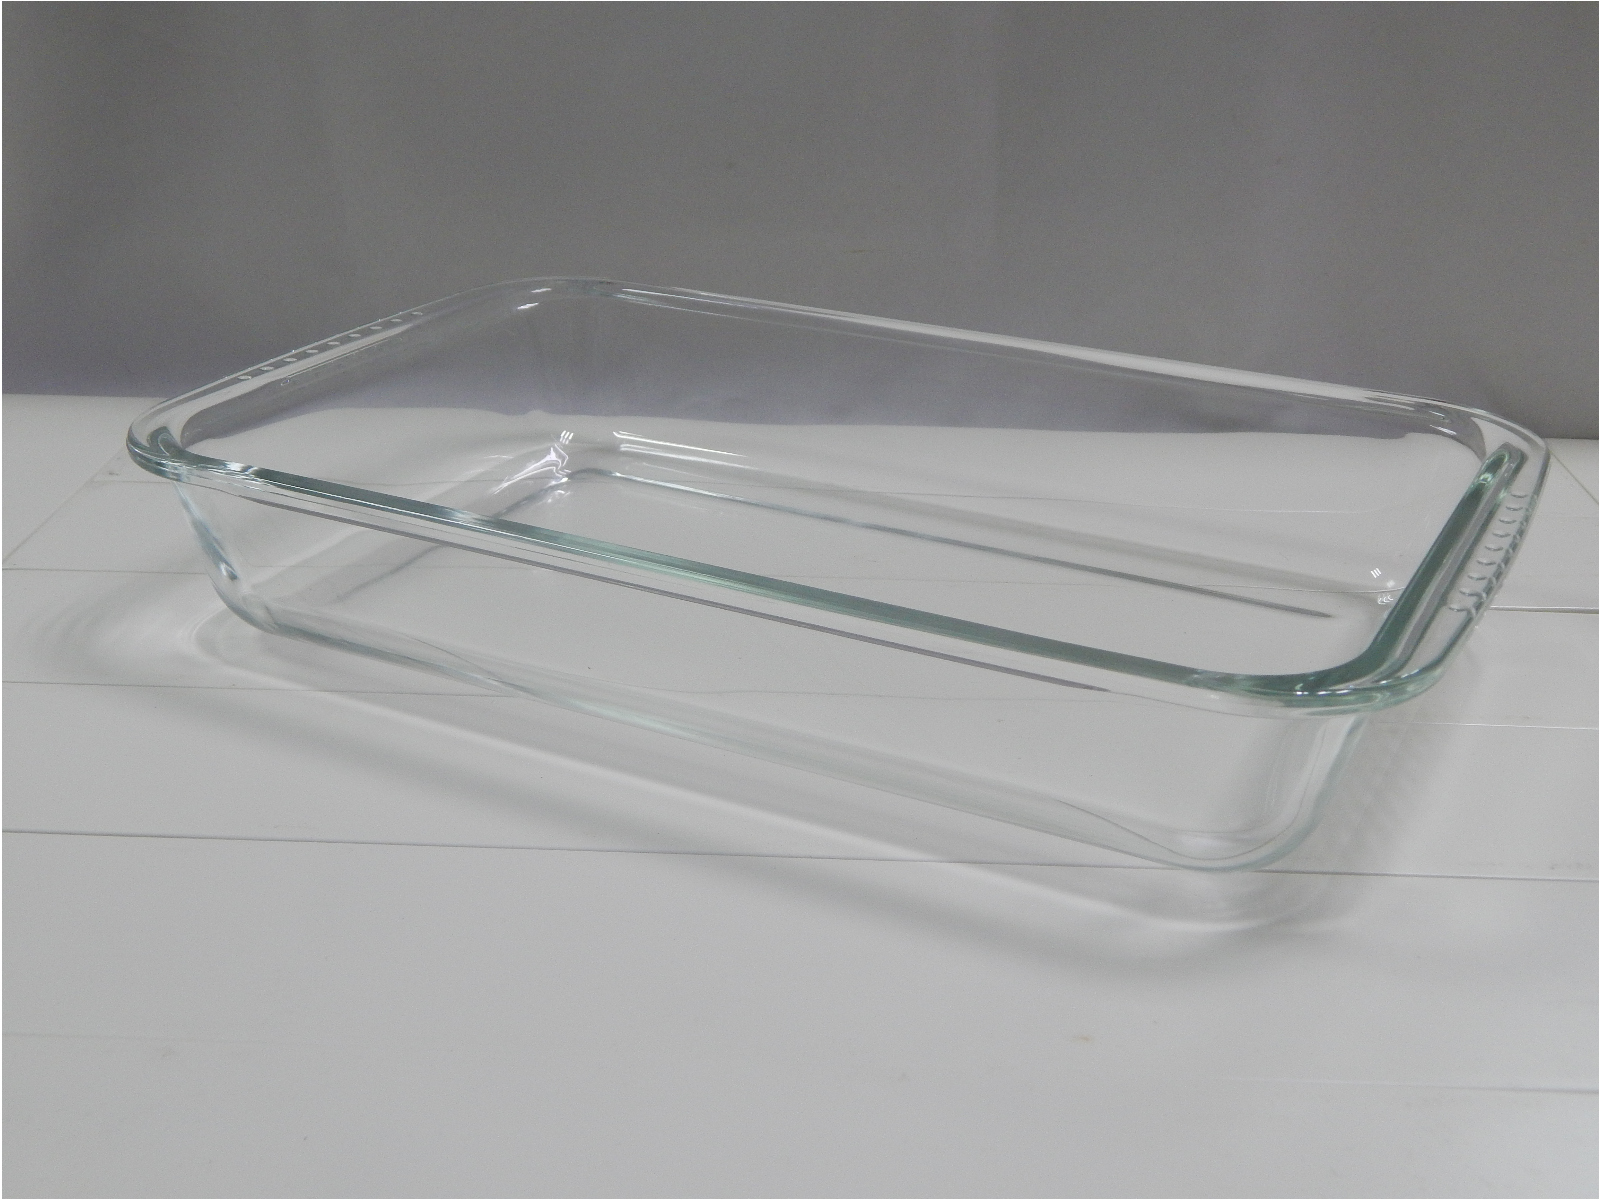 Easylock Oven Safe Rectangular Glass Bakeware